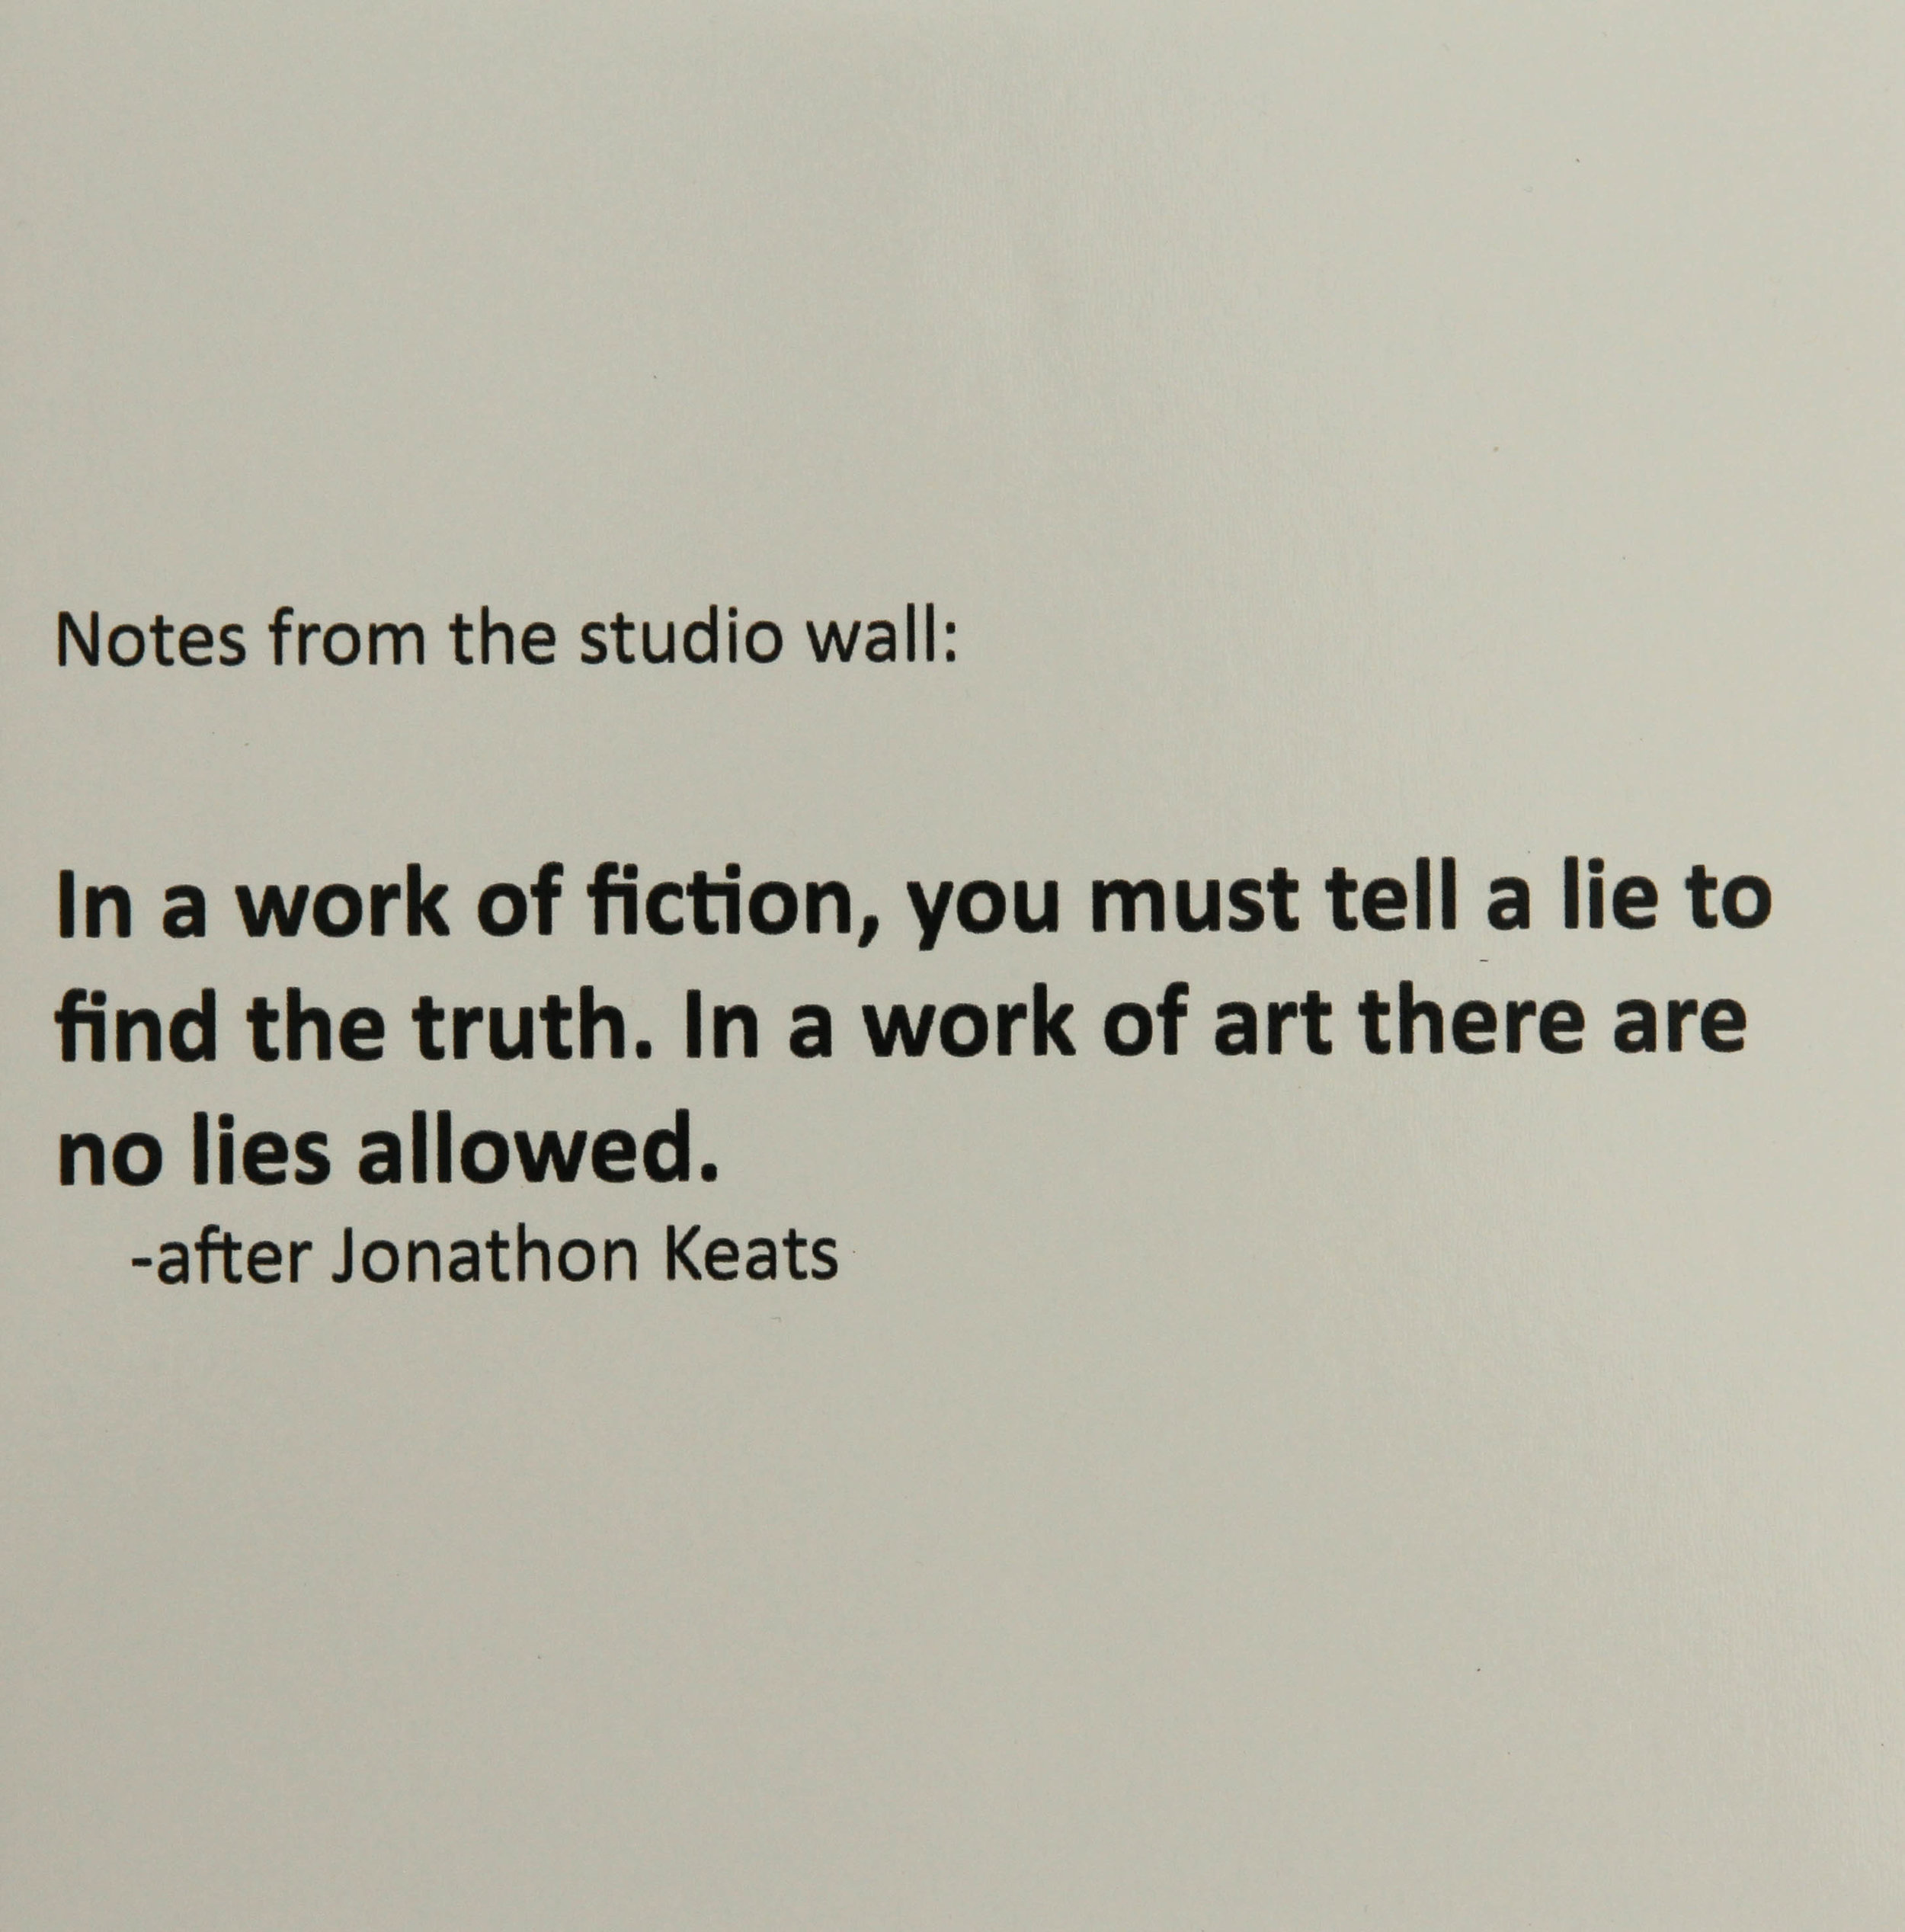 Notes on the studio wall